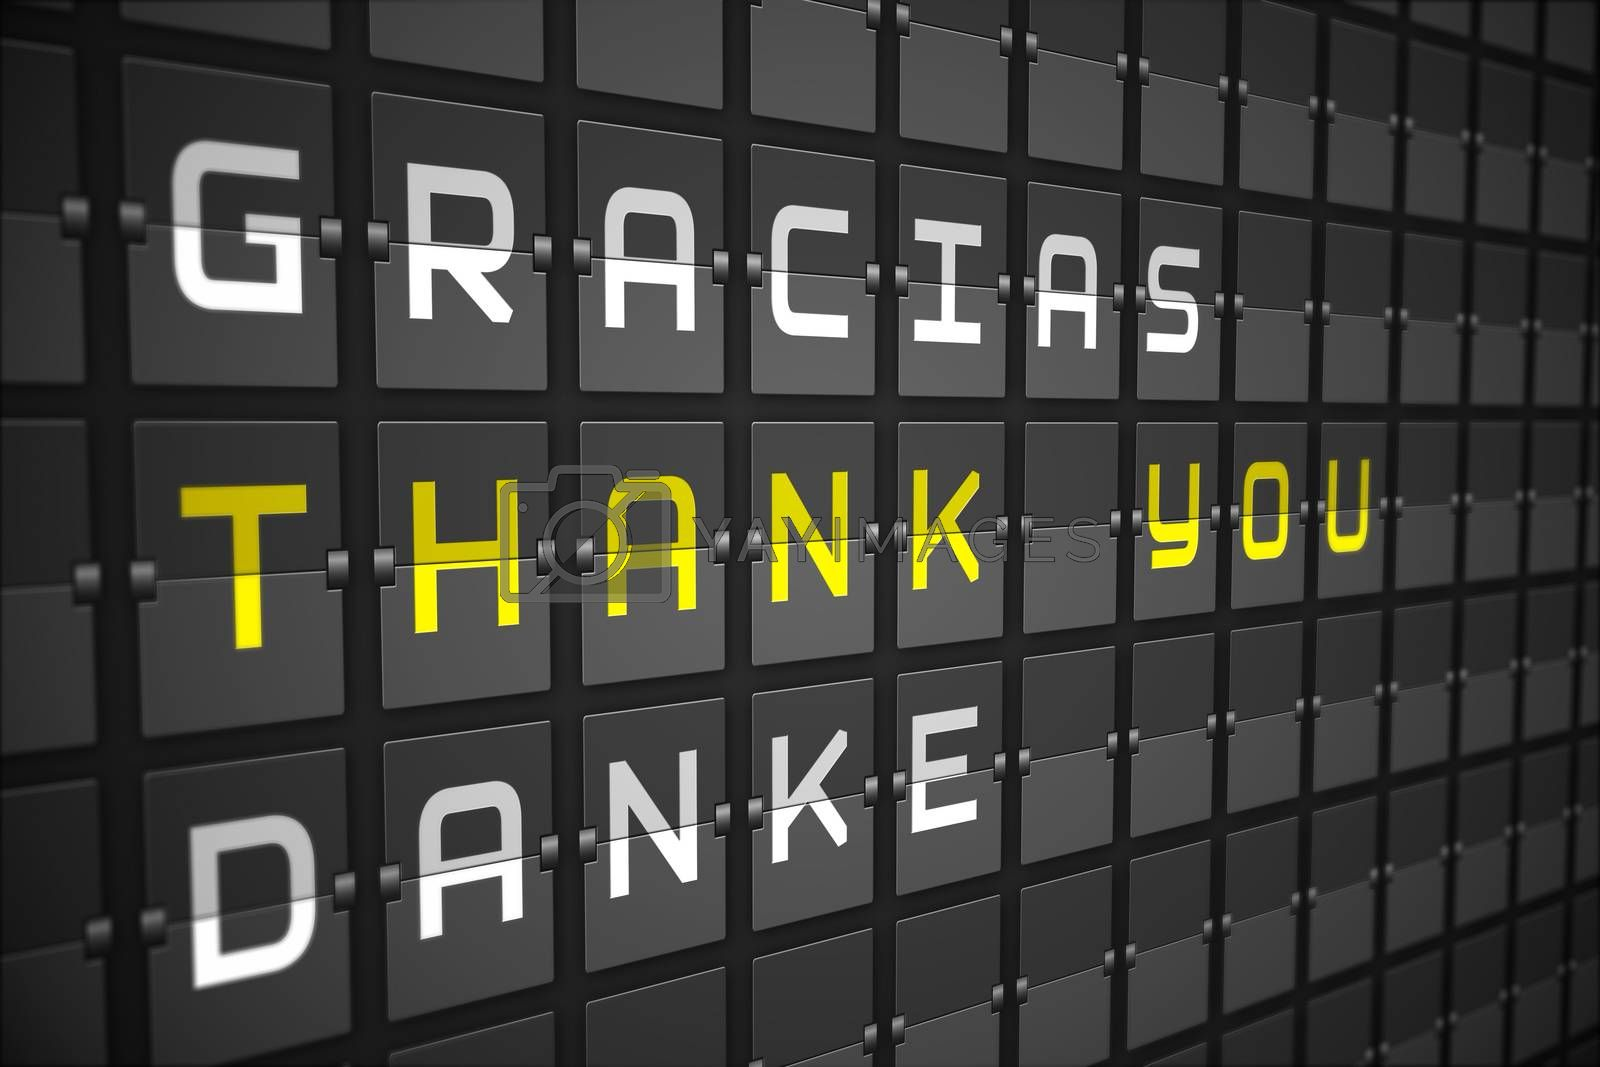 Thank you in languages on digitally generated black mechanical board